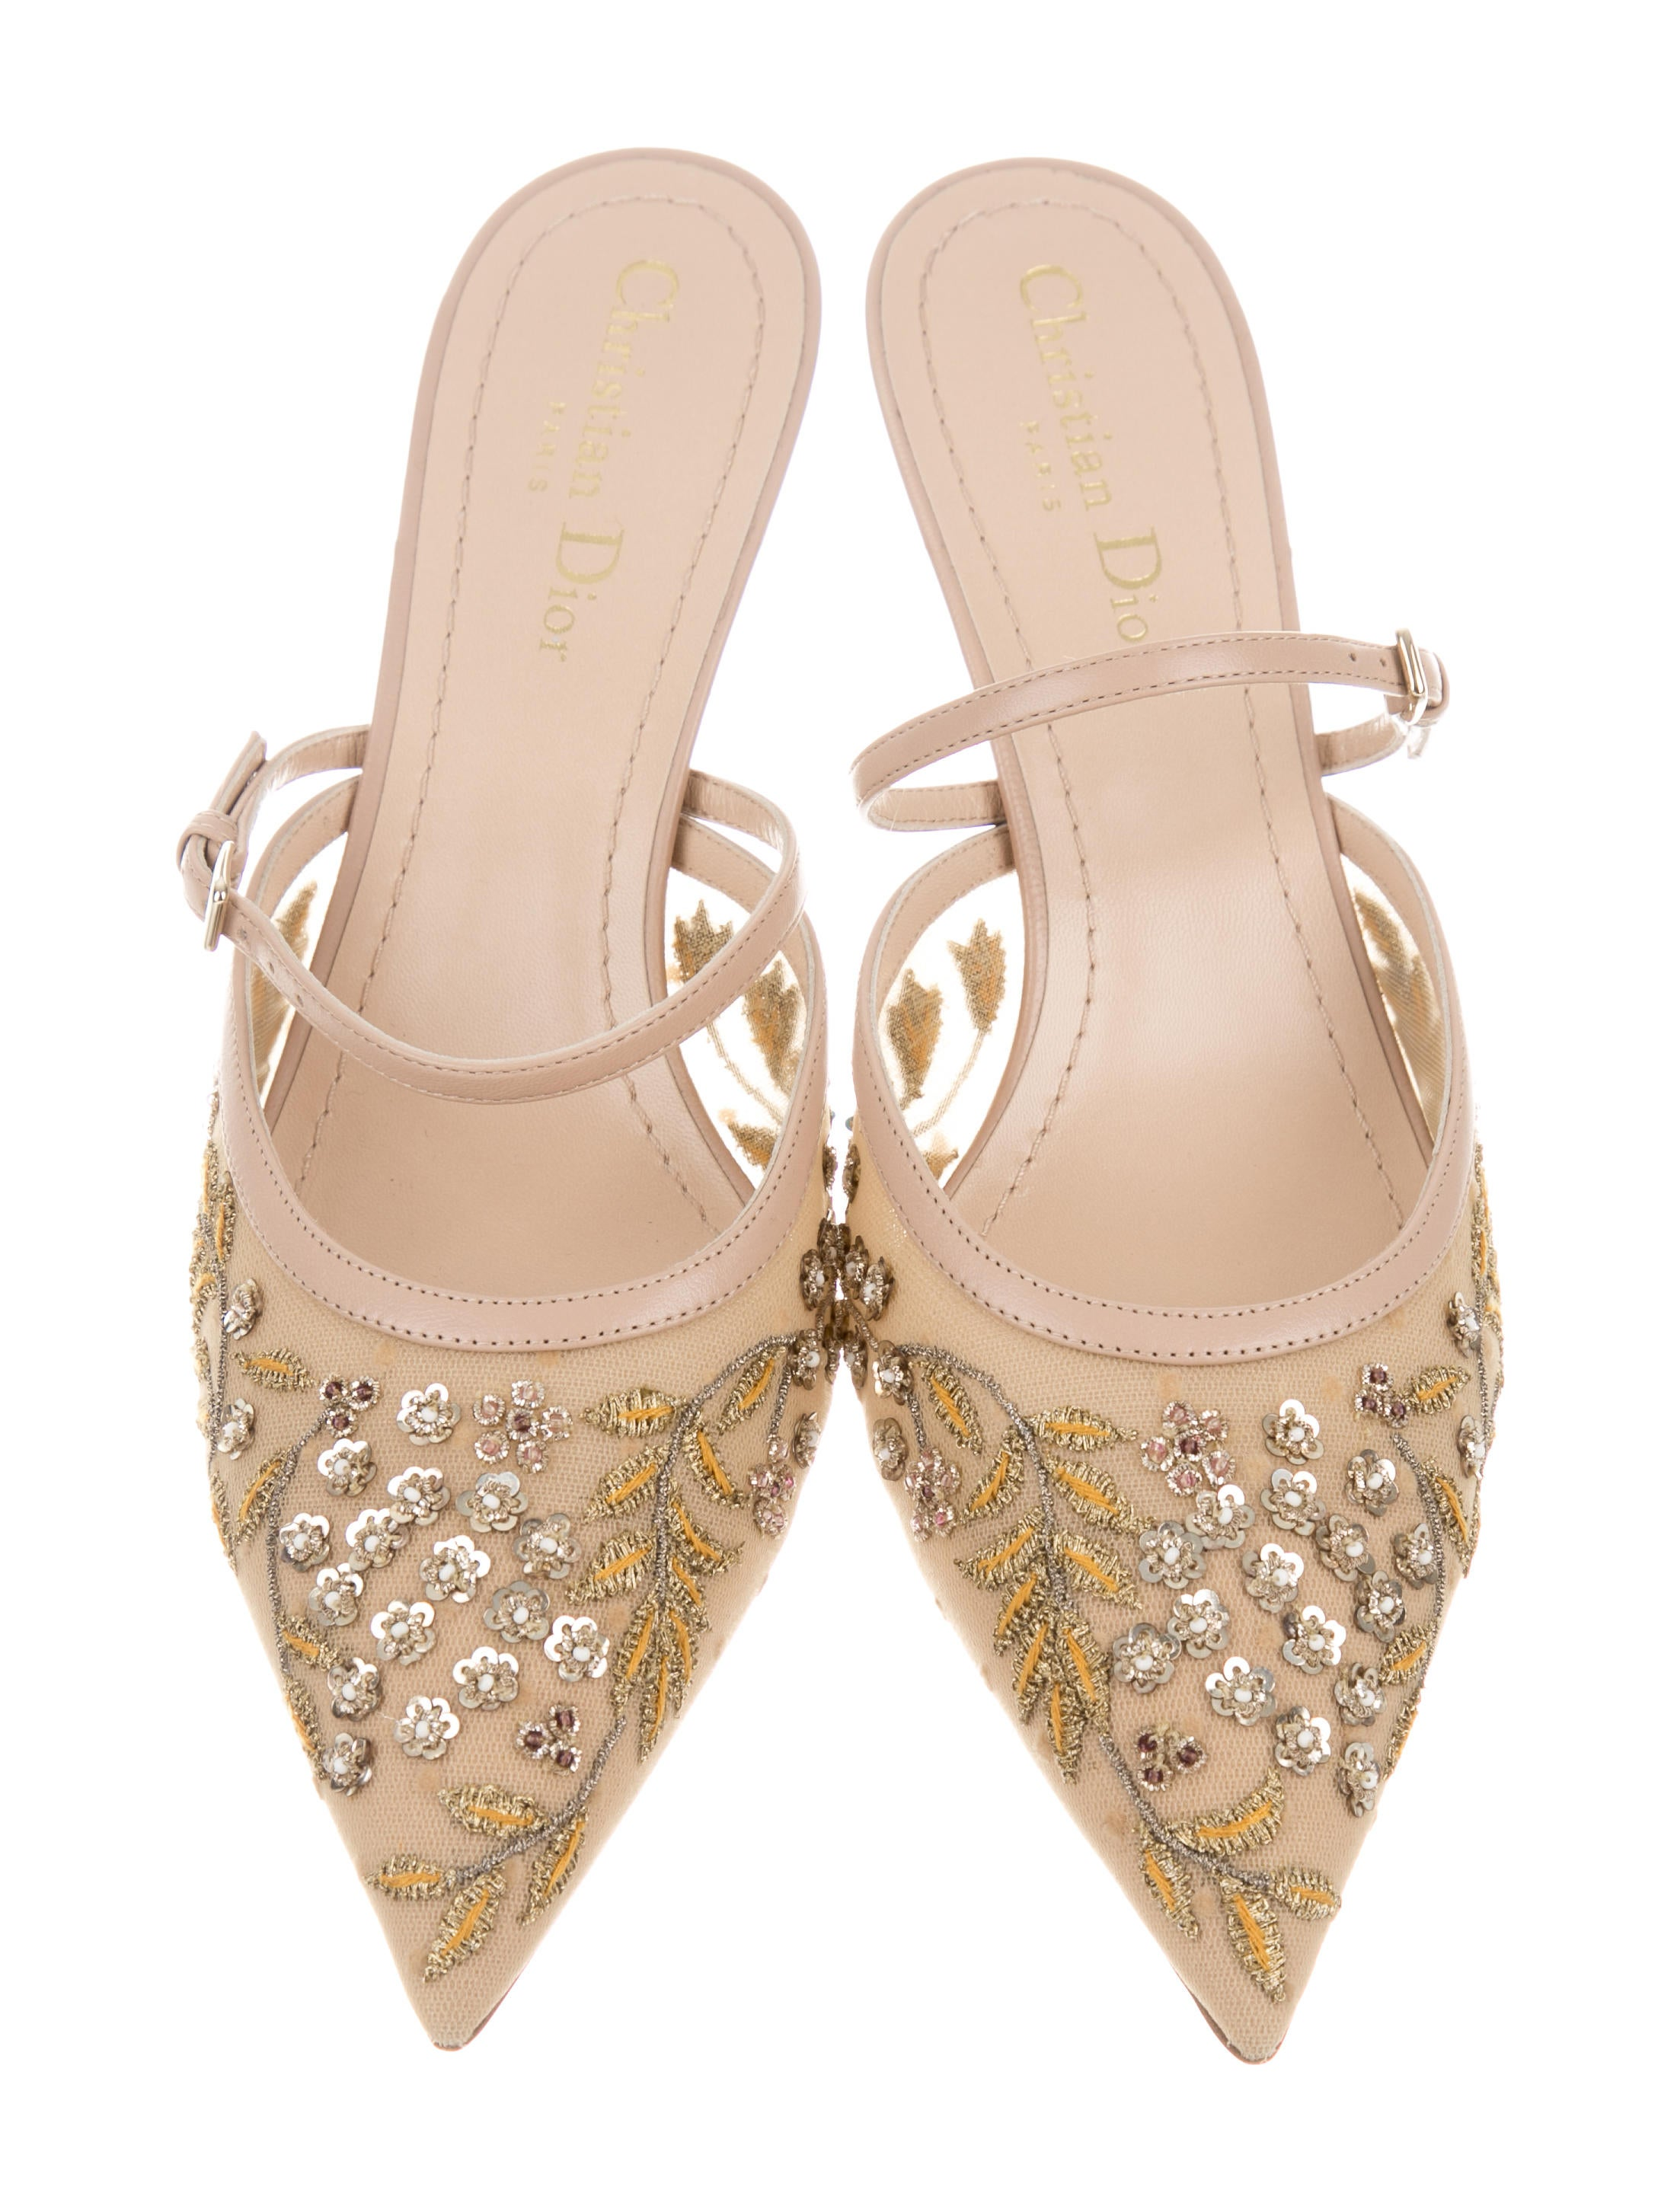 cheap price outlet sale countdown package sale online Christian Dior Dioreve Embellished Mules w/ Tags cheap sale best store to get outlet genuine trAkznqoC